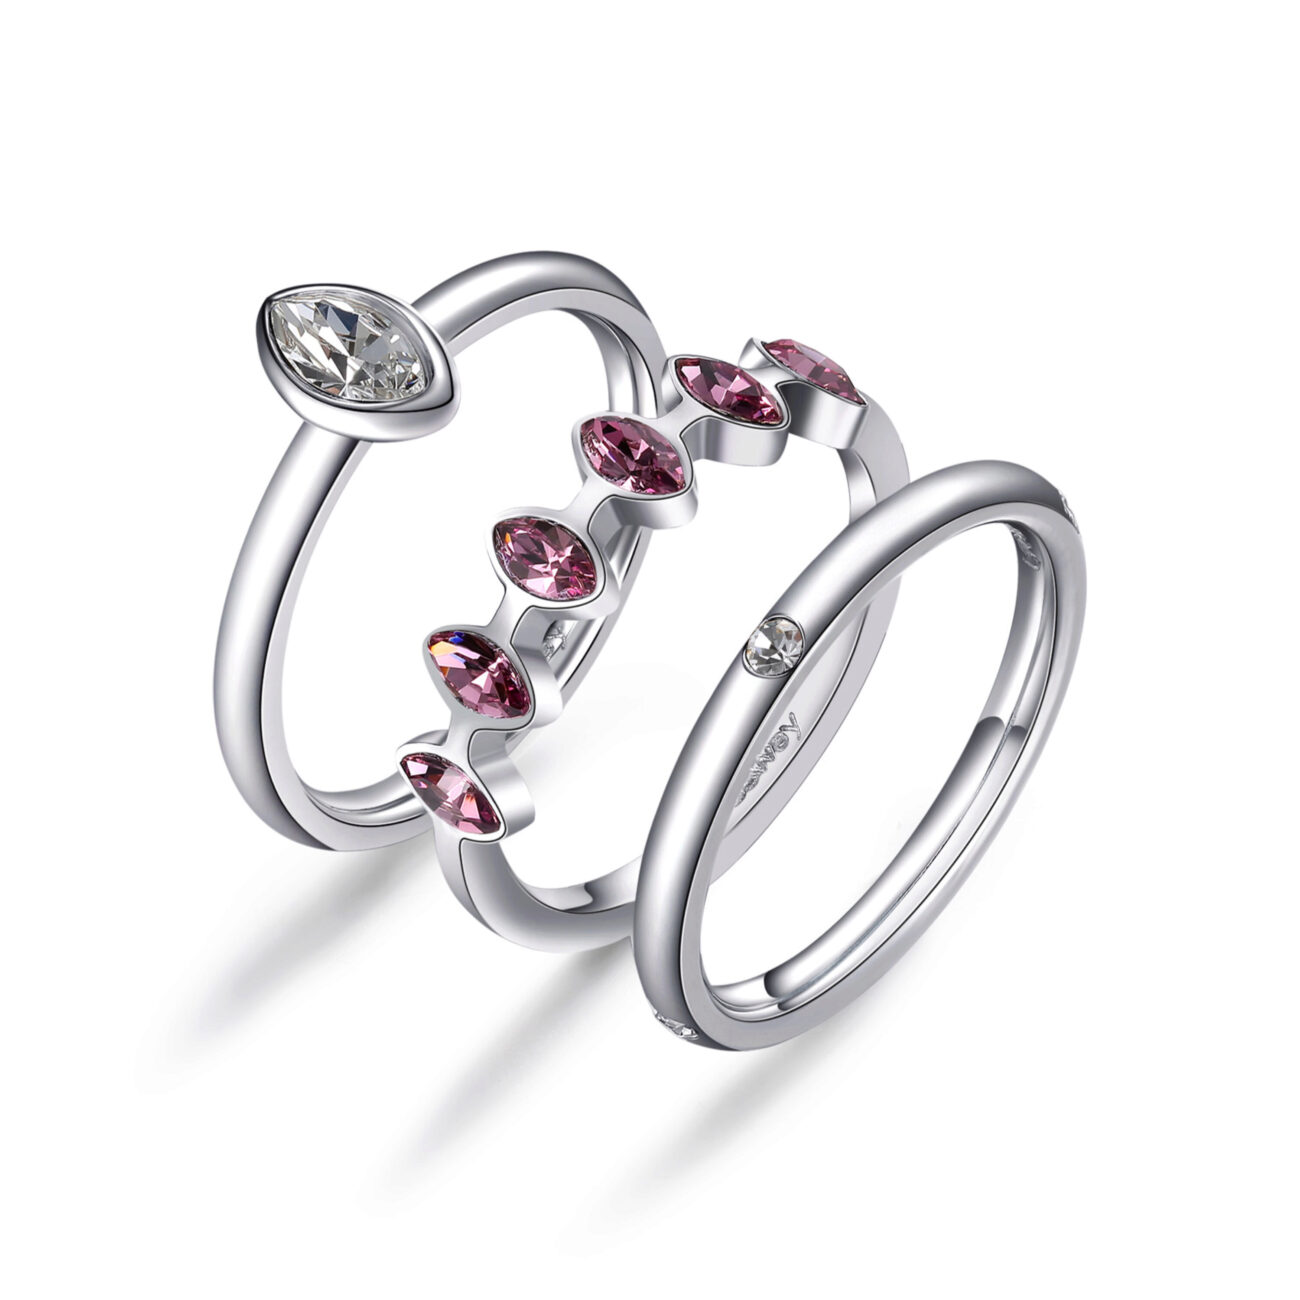 316L stainless steel rings set with crystal and light ametist crystals.